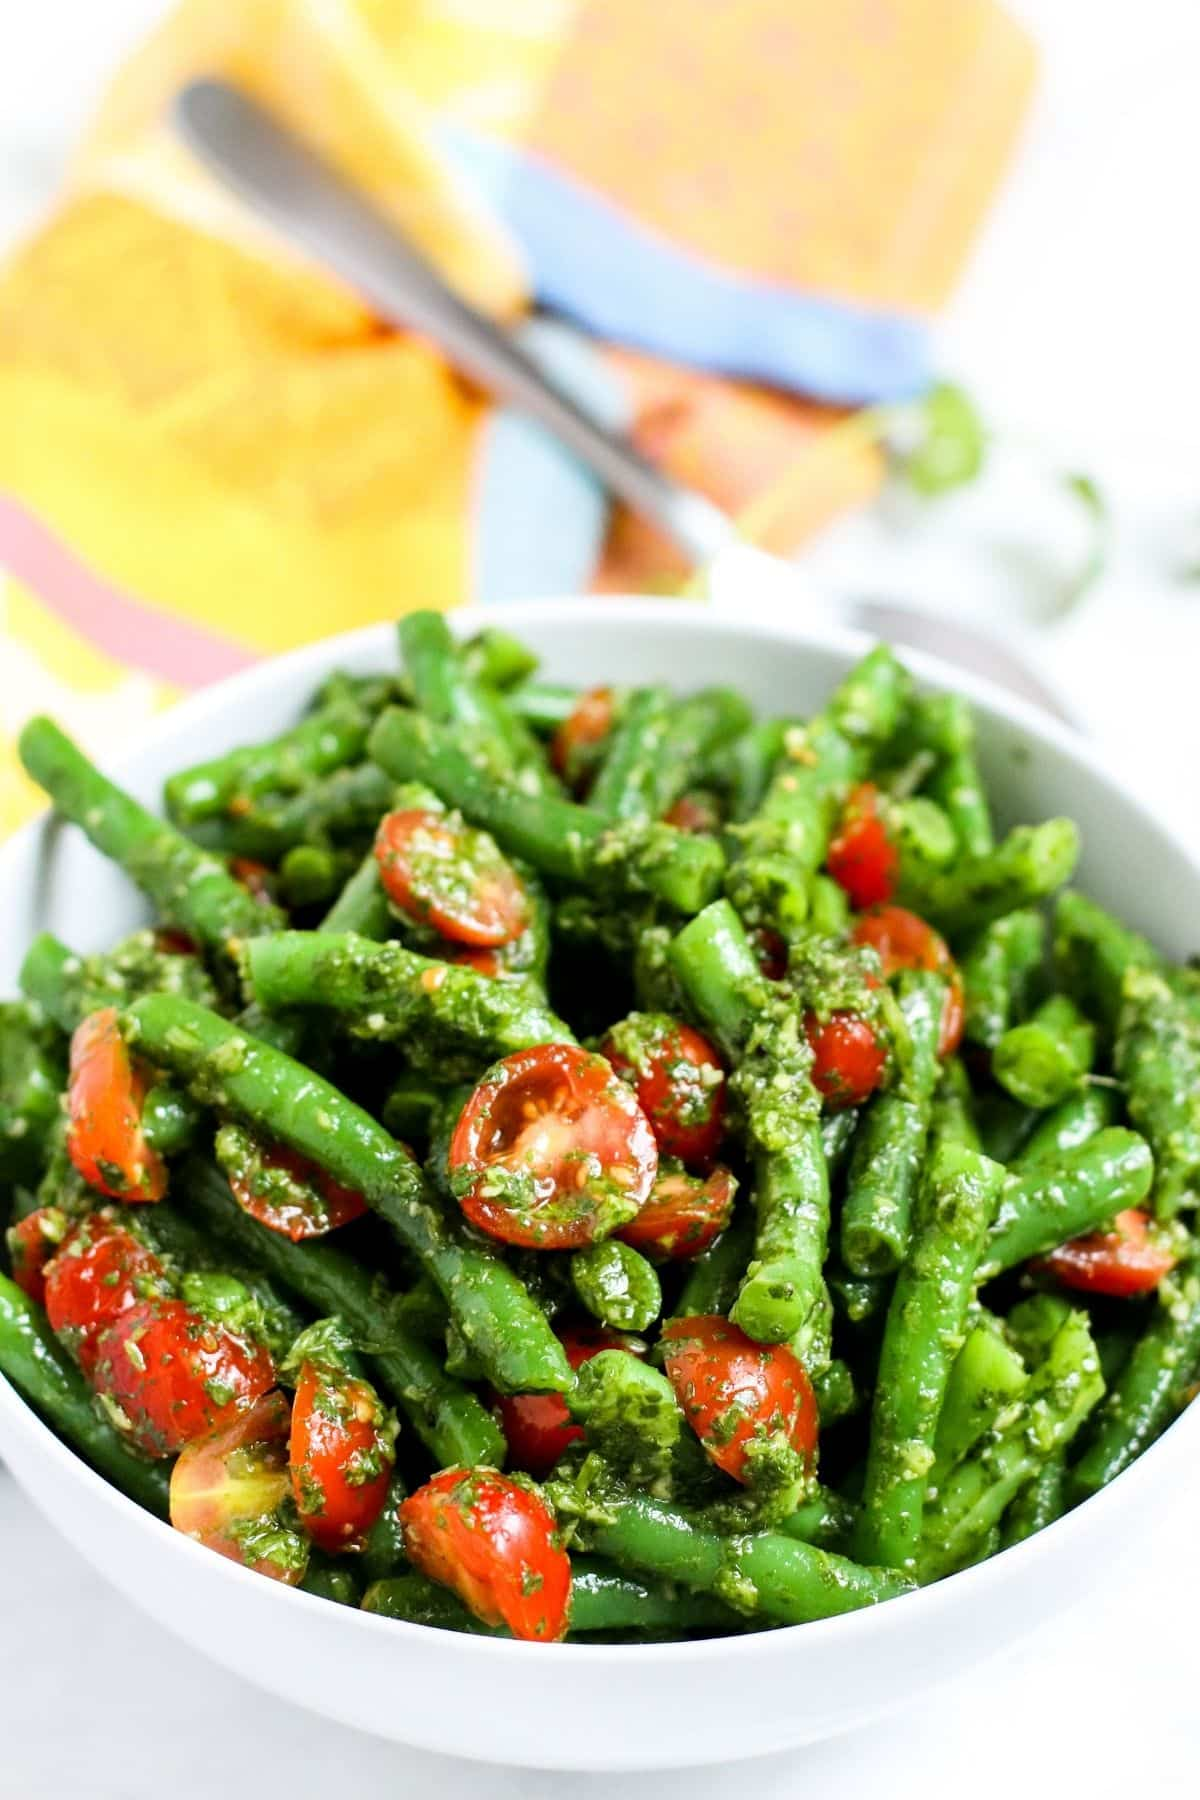 Bowl of green beans salad with cherry tomatoes topped with cilantro sauce